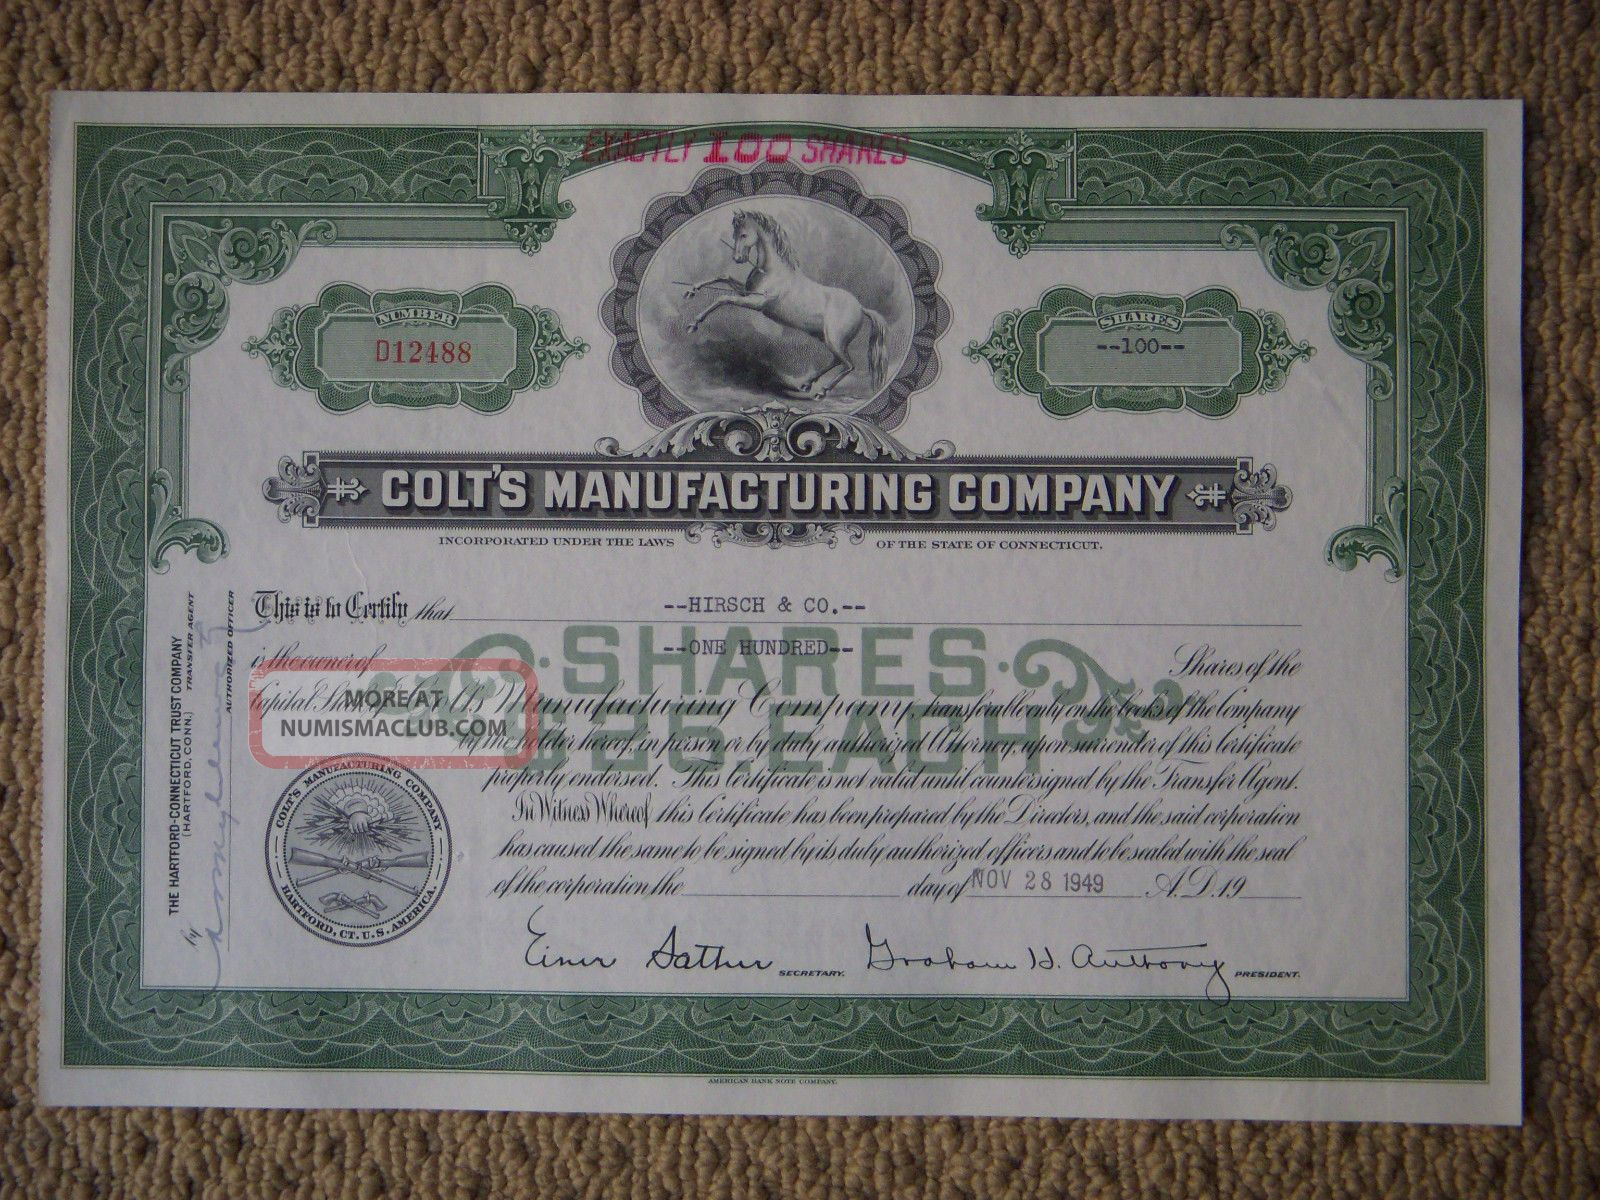 Colt ' S Manufacturing Company Green Stock Certificate D12488 100 Shares From 1949 World photo